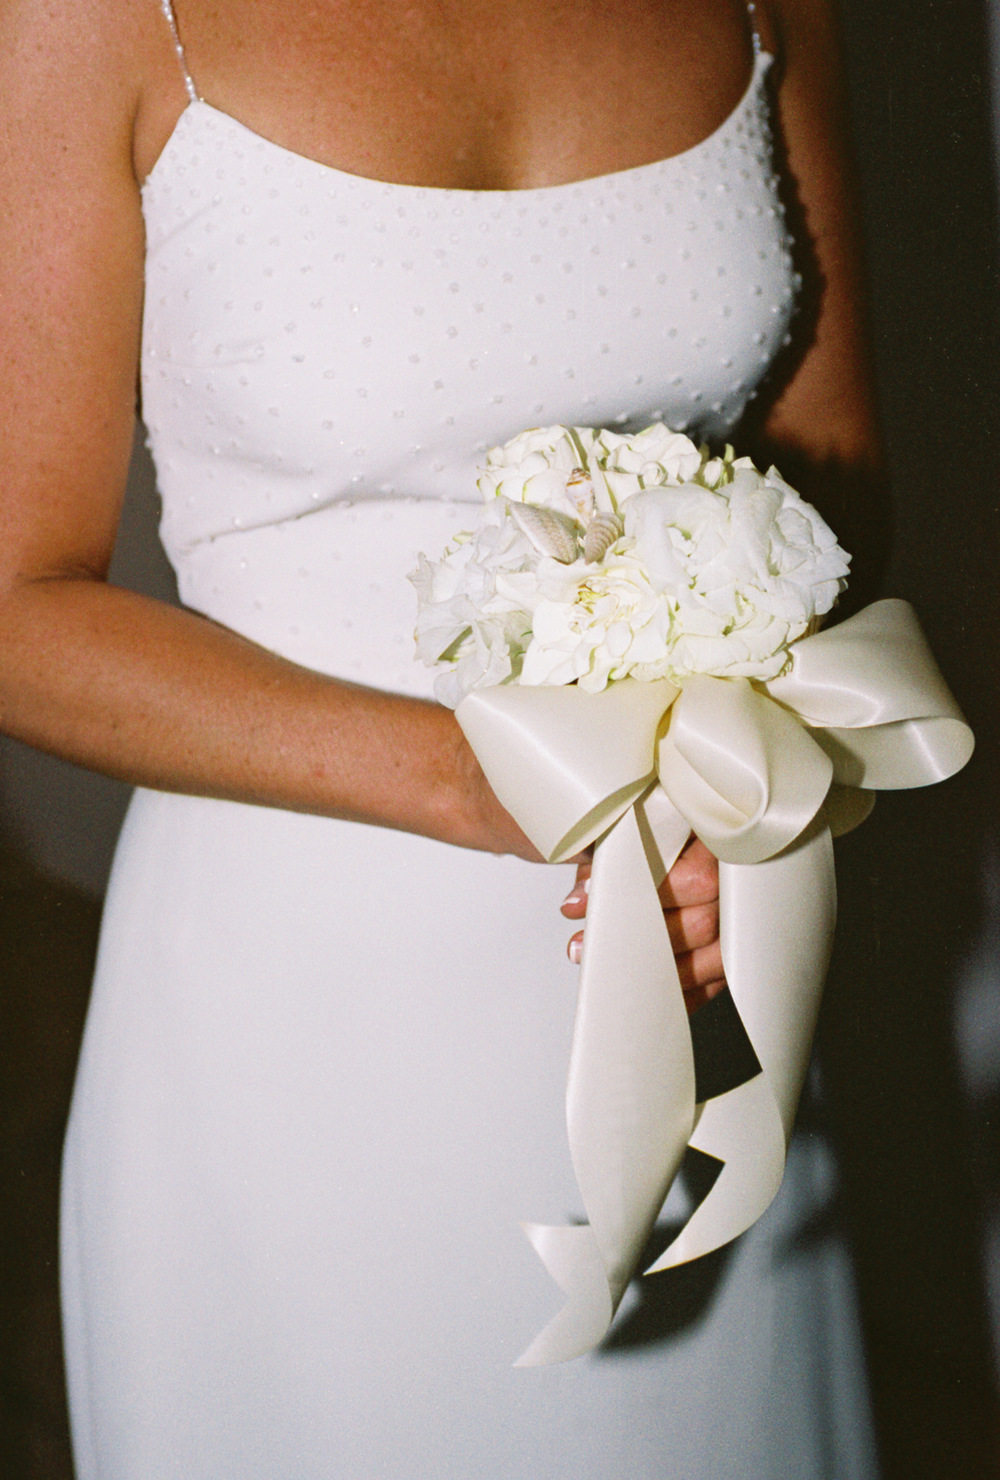 The bride carried a bouquet of gardenias tied with a white satin ribbon to compliment her pearl-studded wedding gown.